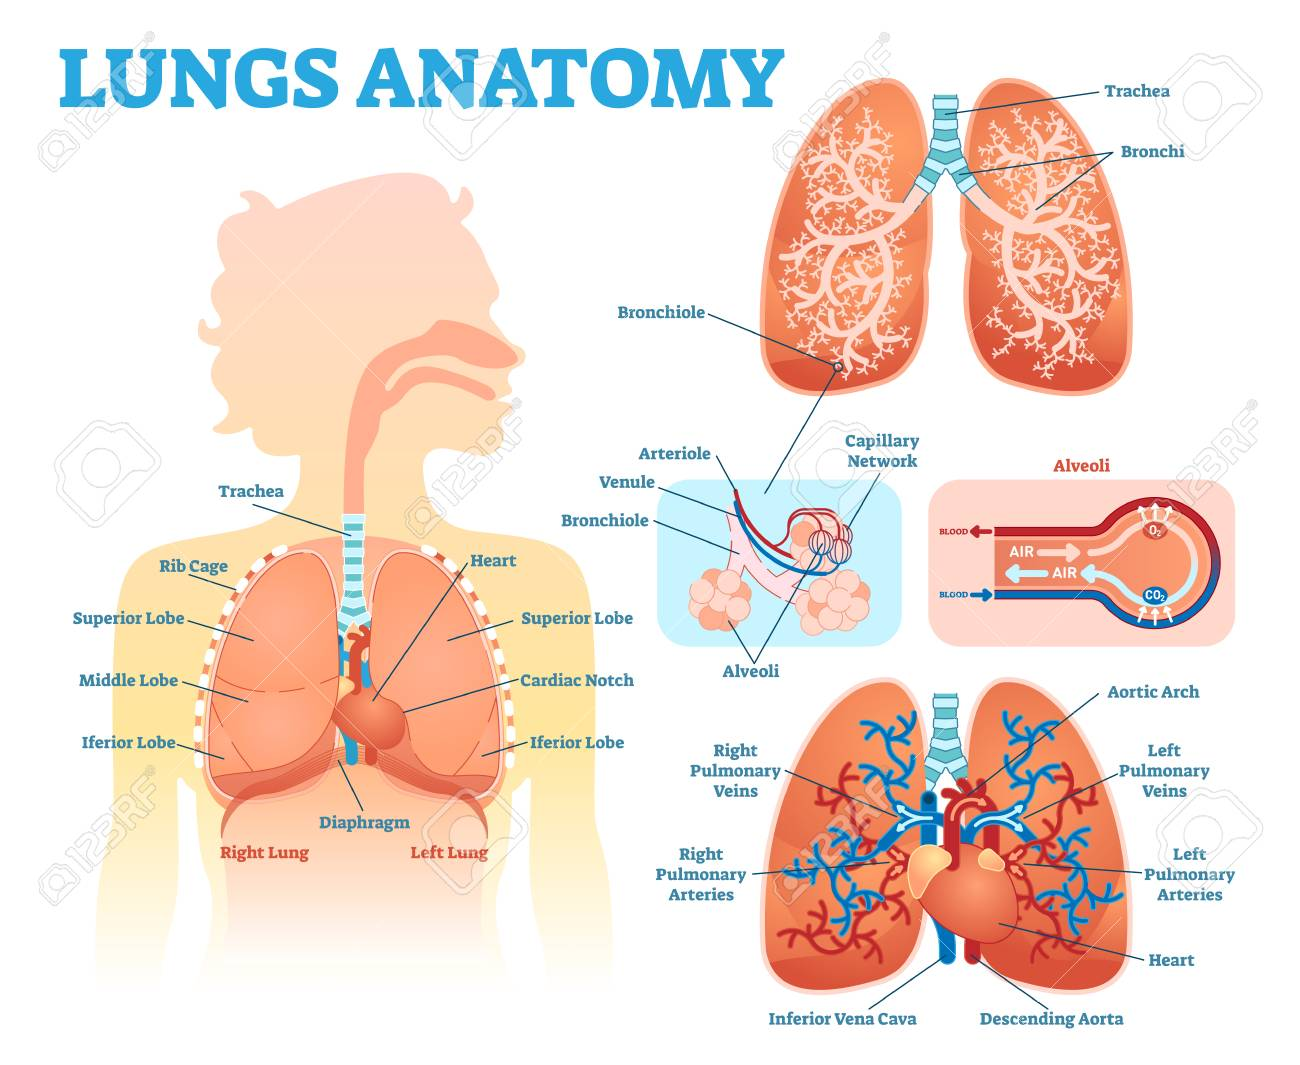 Lungs Anatomy Medical Vector Illustration Diagram Set With Lung ...